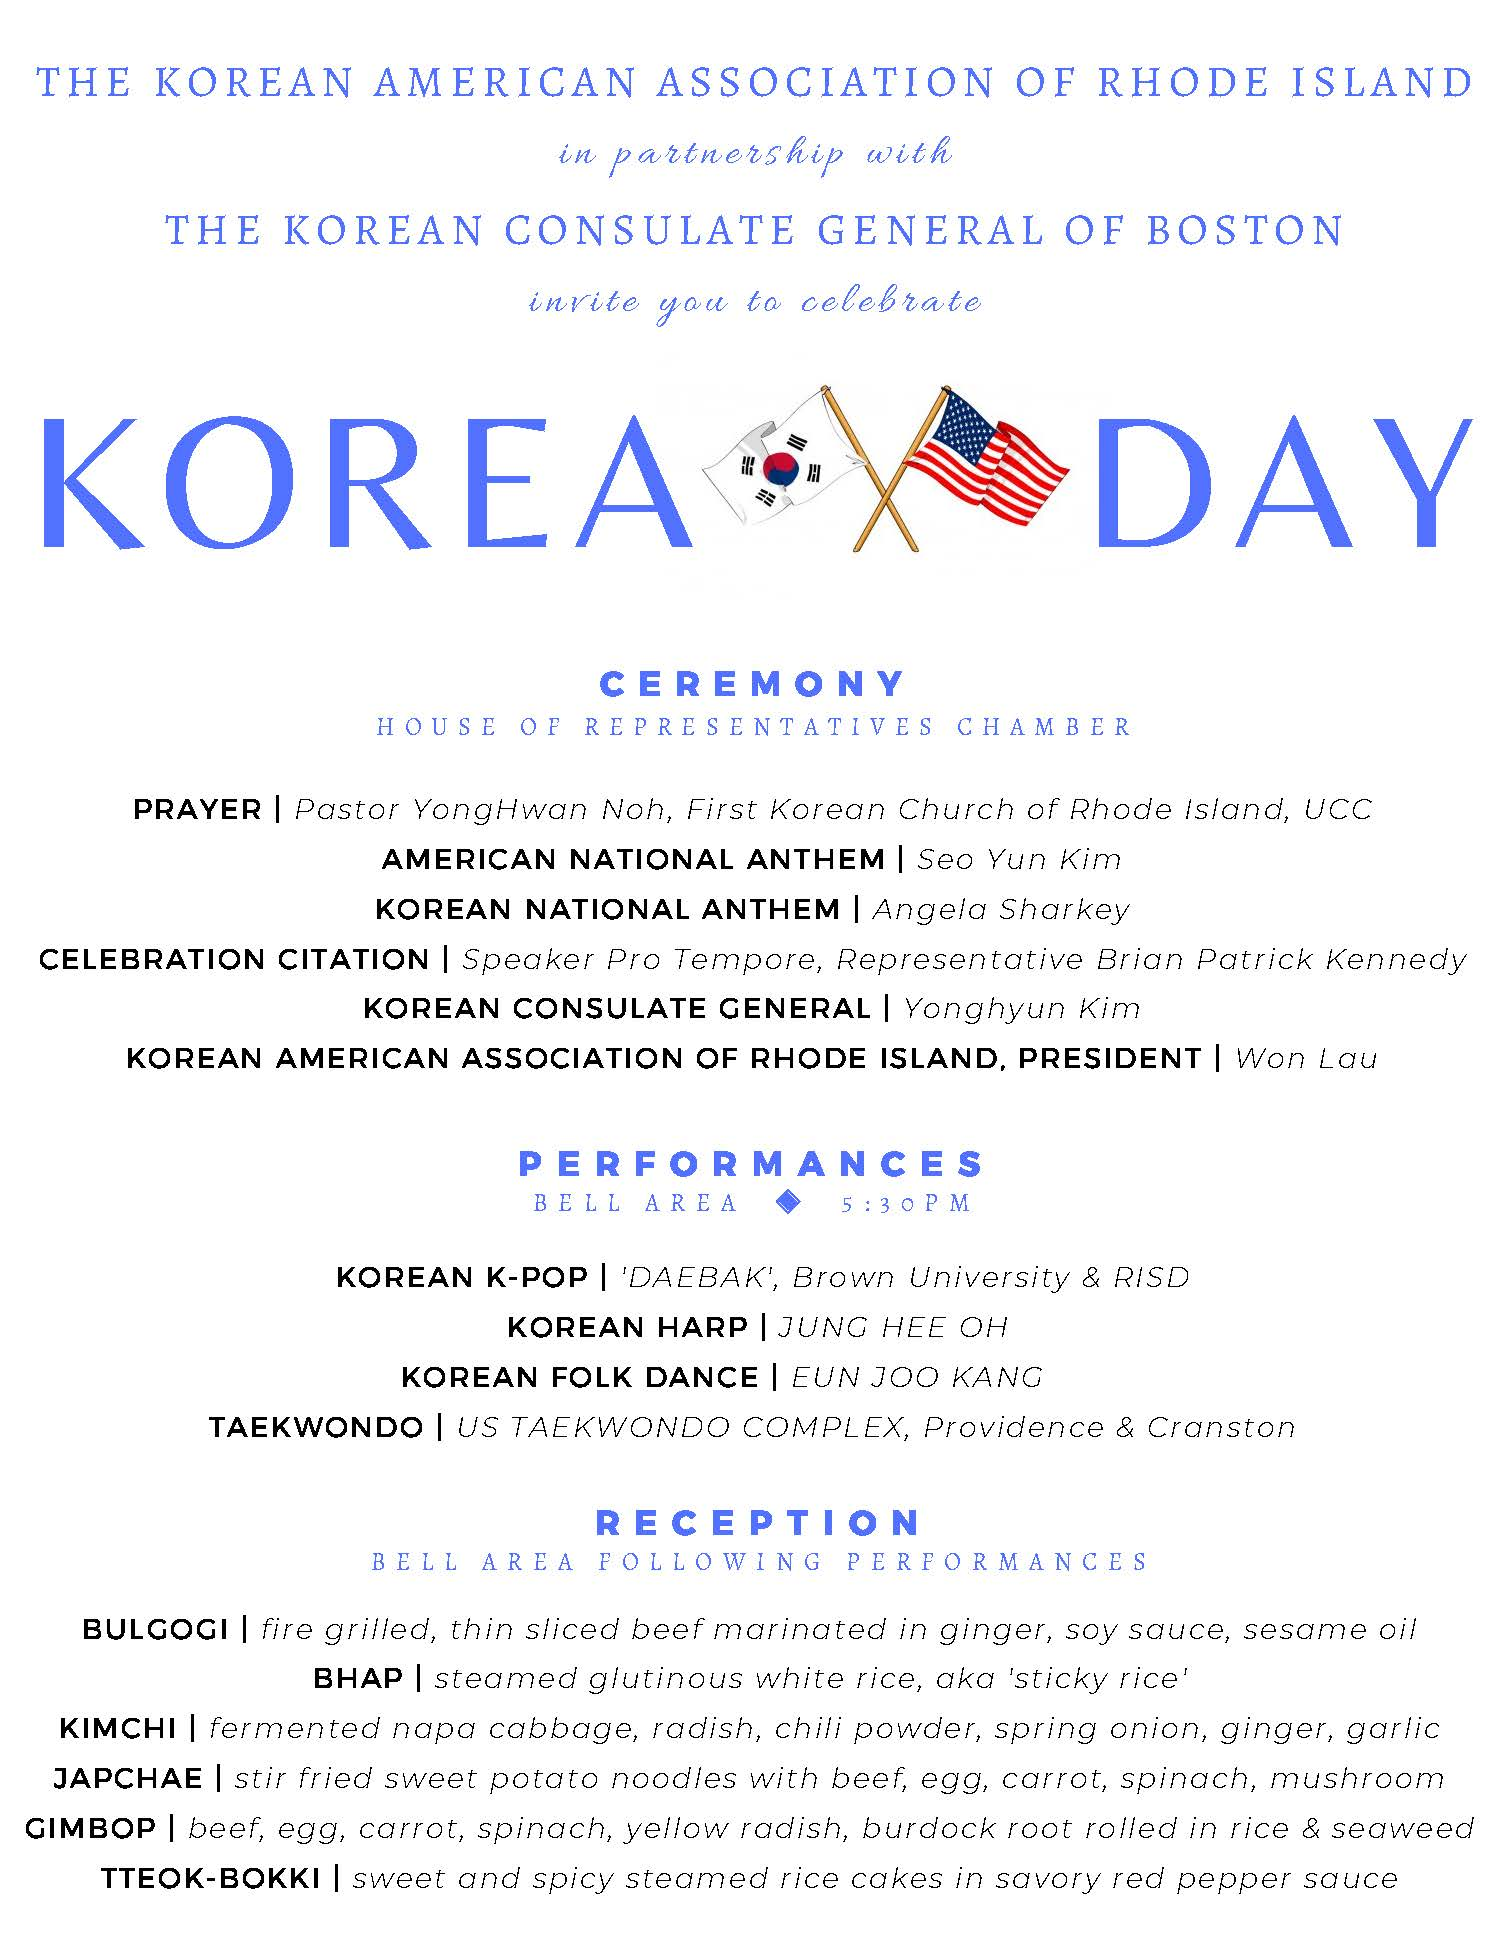 Korea Day Program pic.jpg